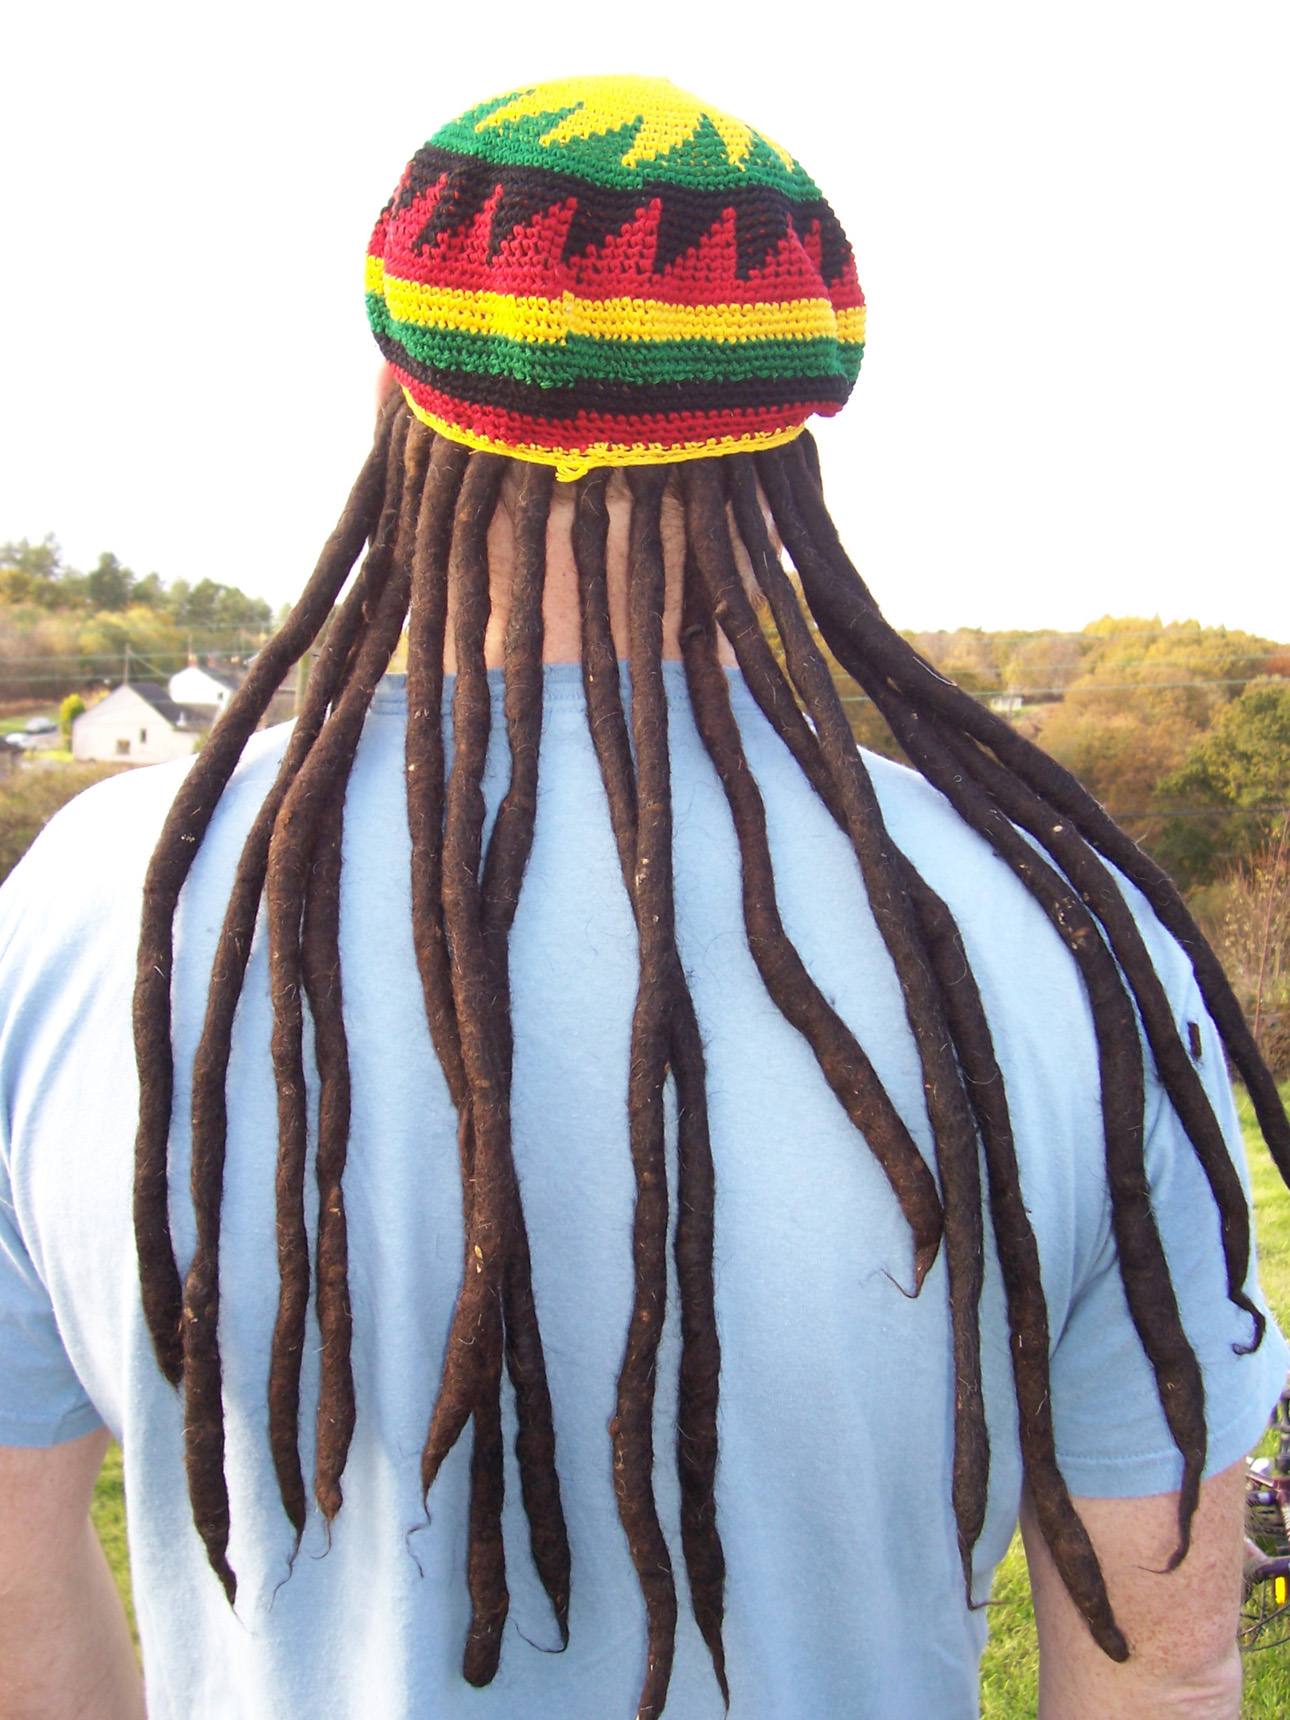 Free crochet pattern linkshippie tams, rasta hats, bere